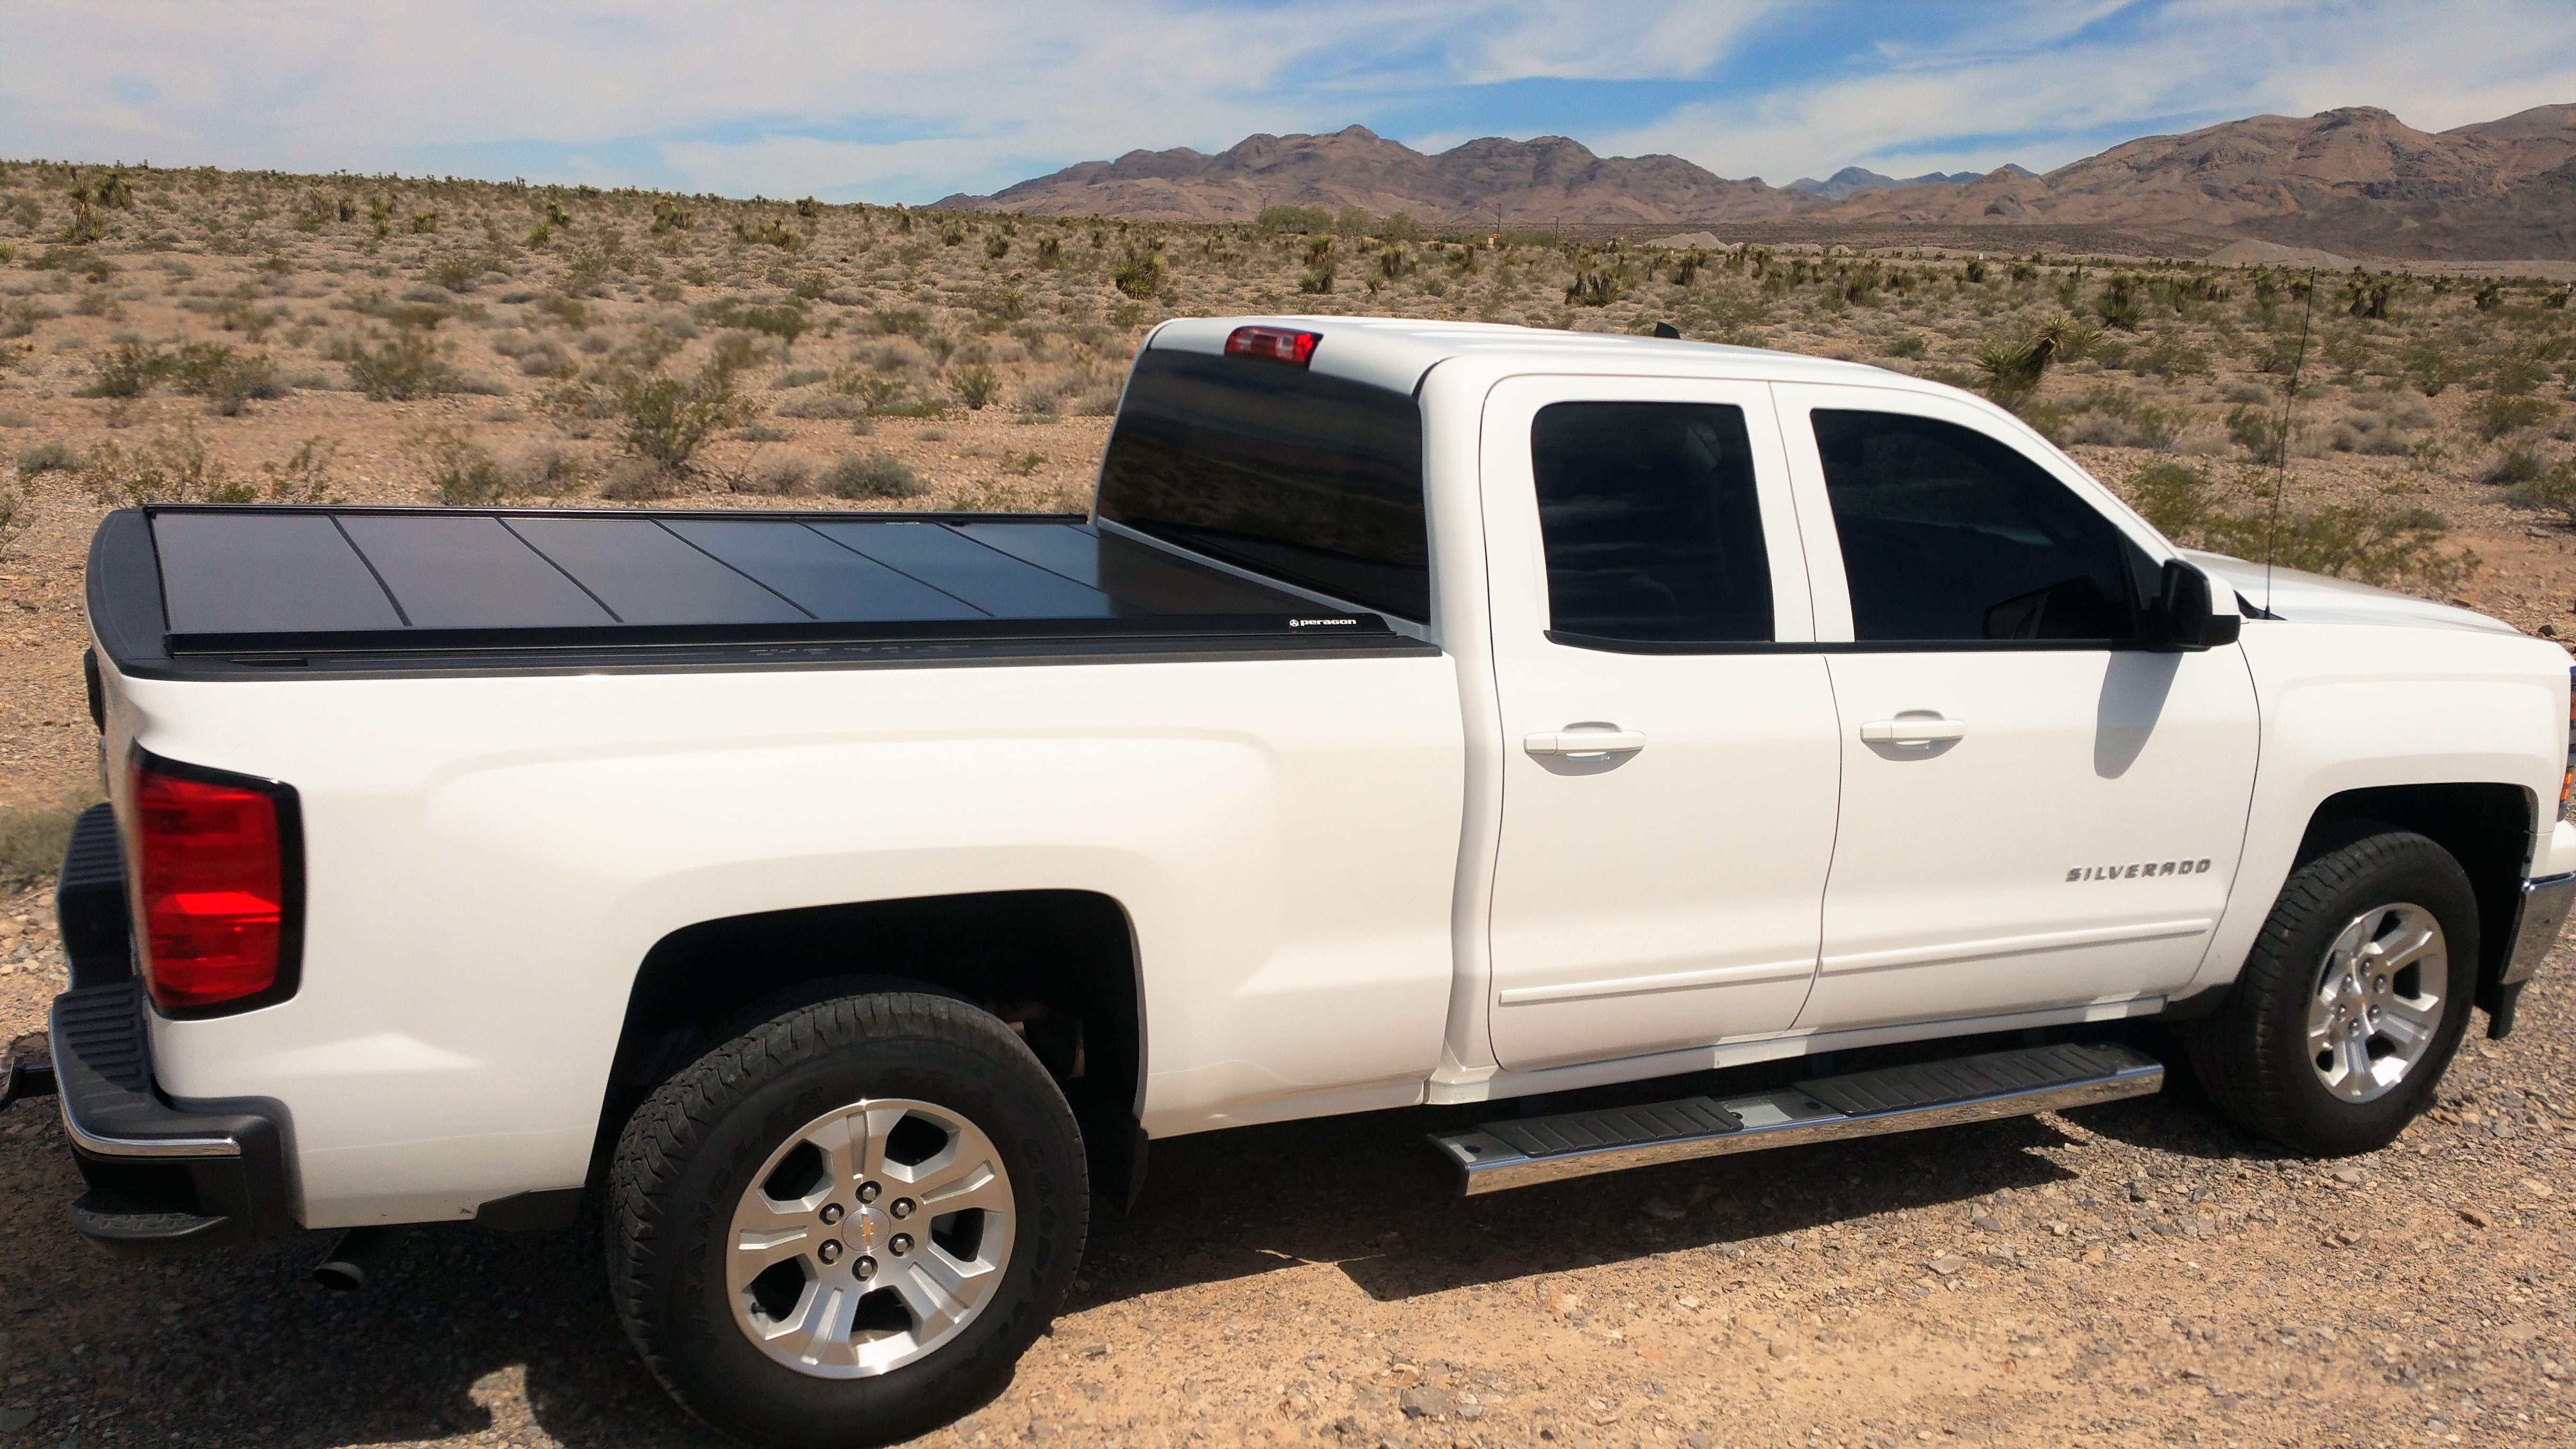 peragon showing honda retractable covers bed reviews truck photos by ridgeline e